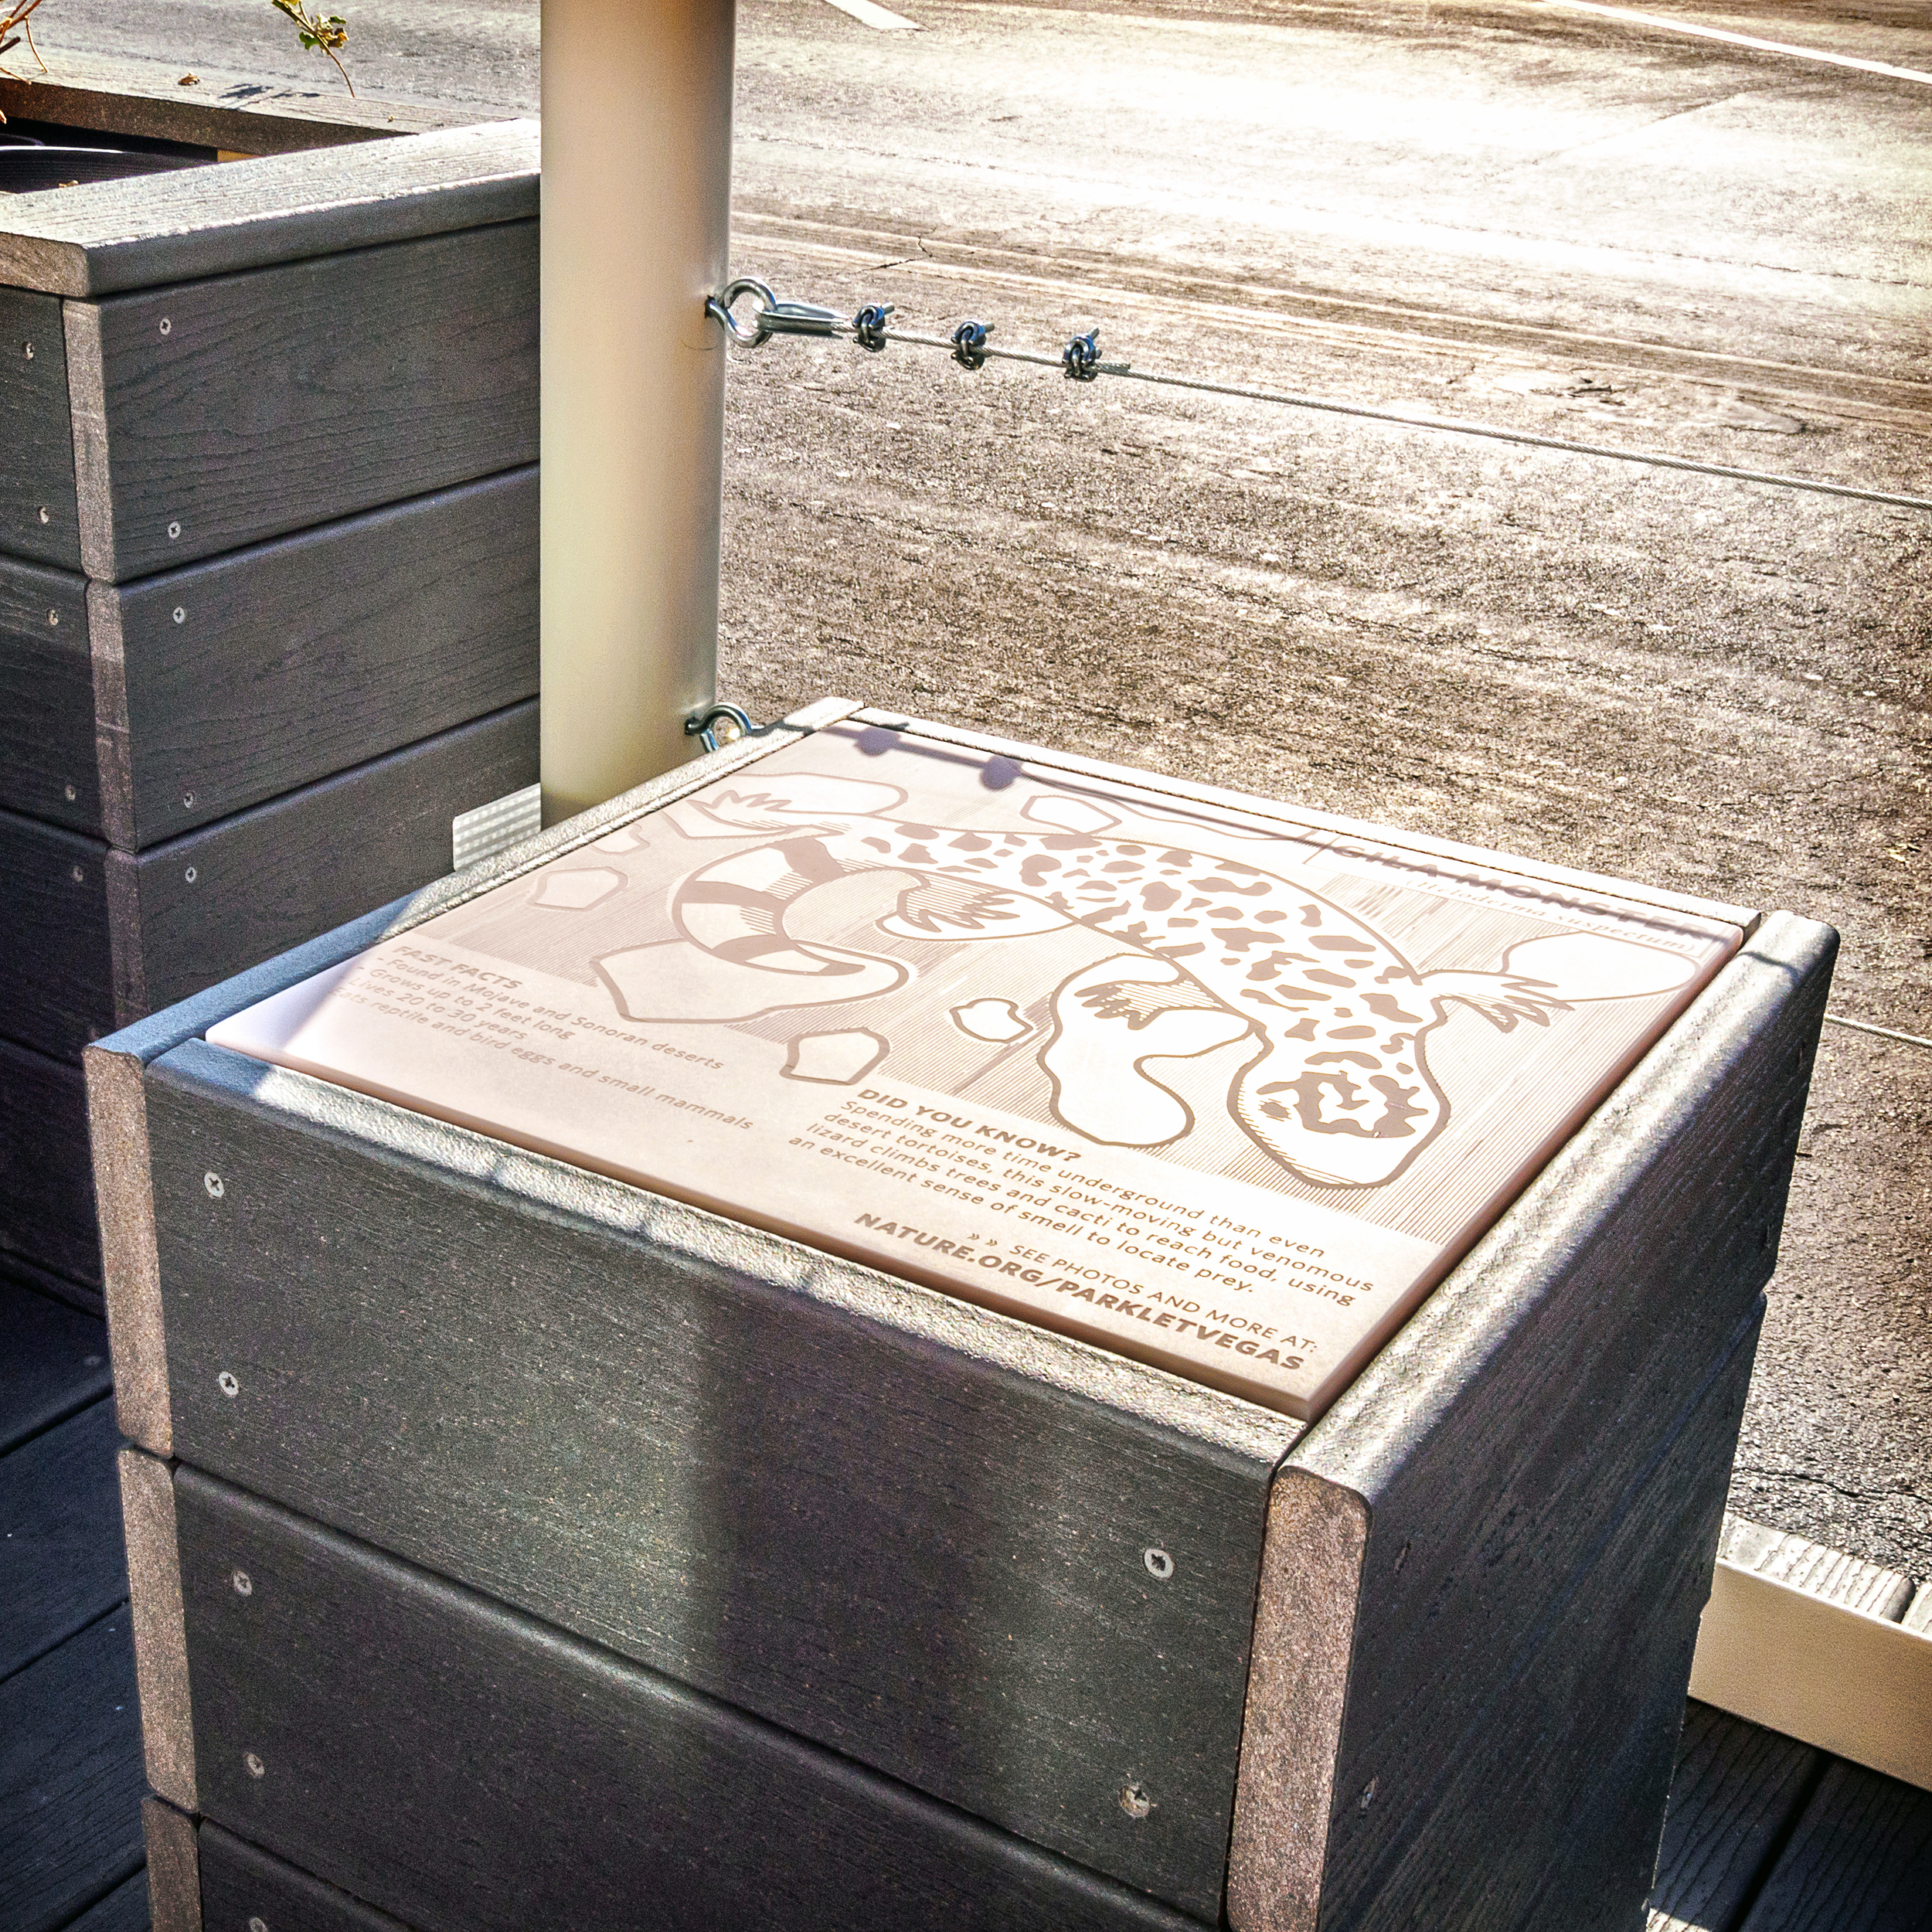 The seats each have signature species of the Mojave Desert laser cut into them.